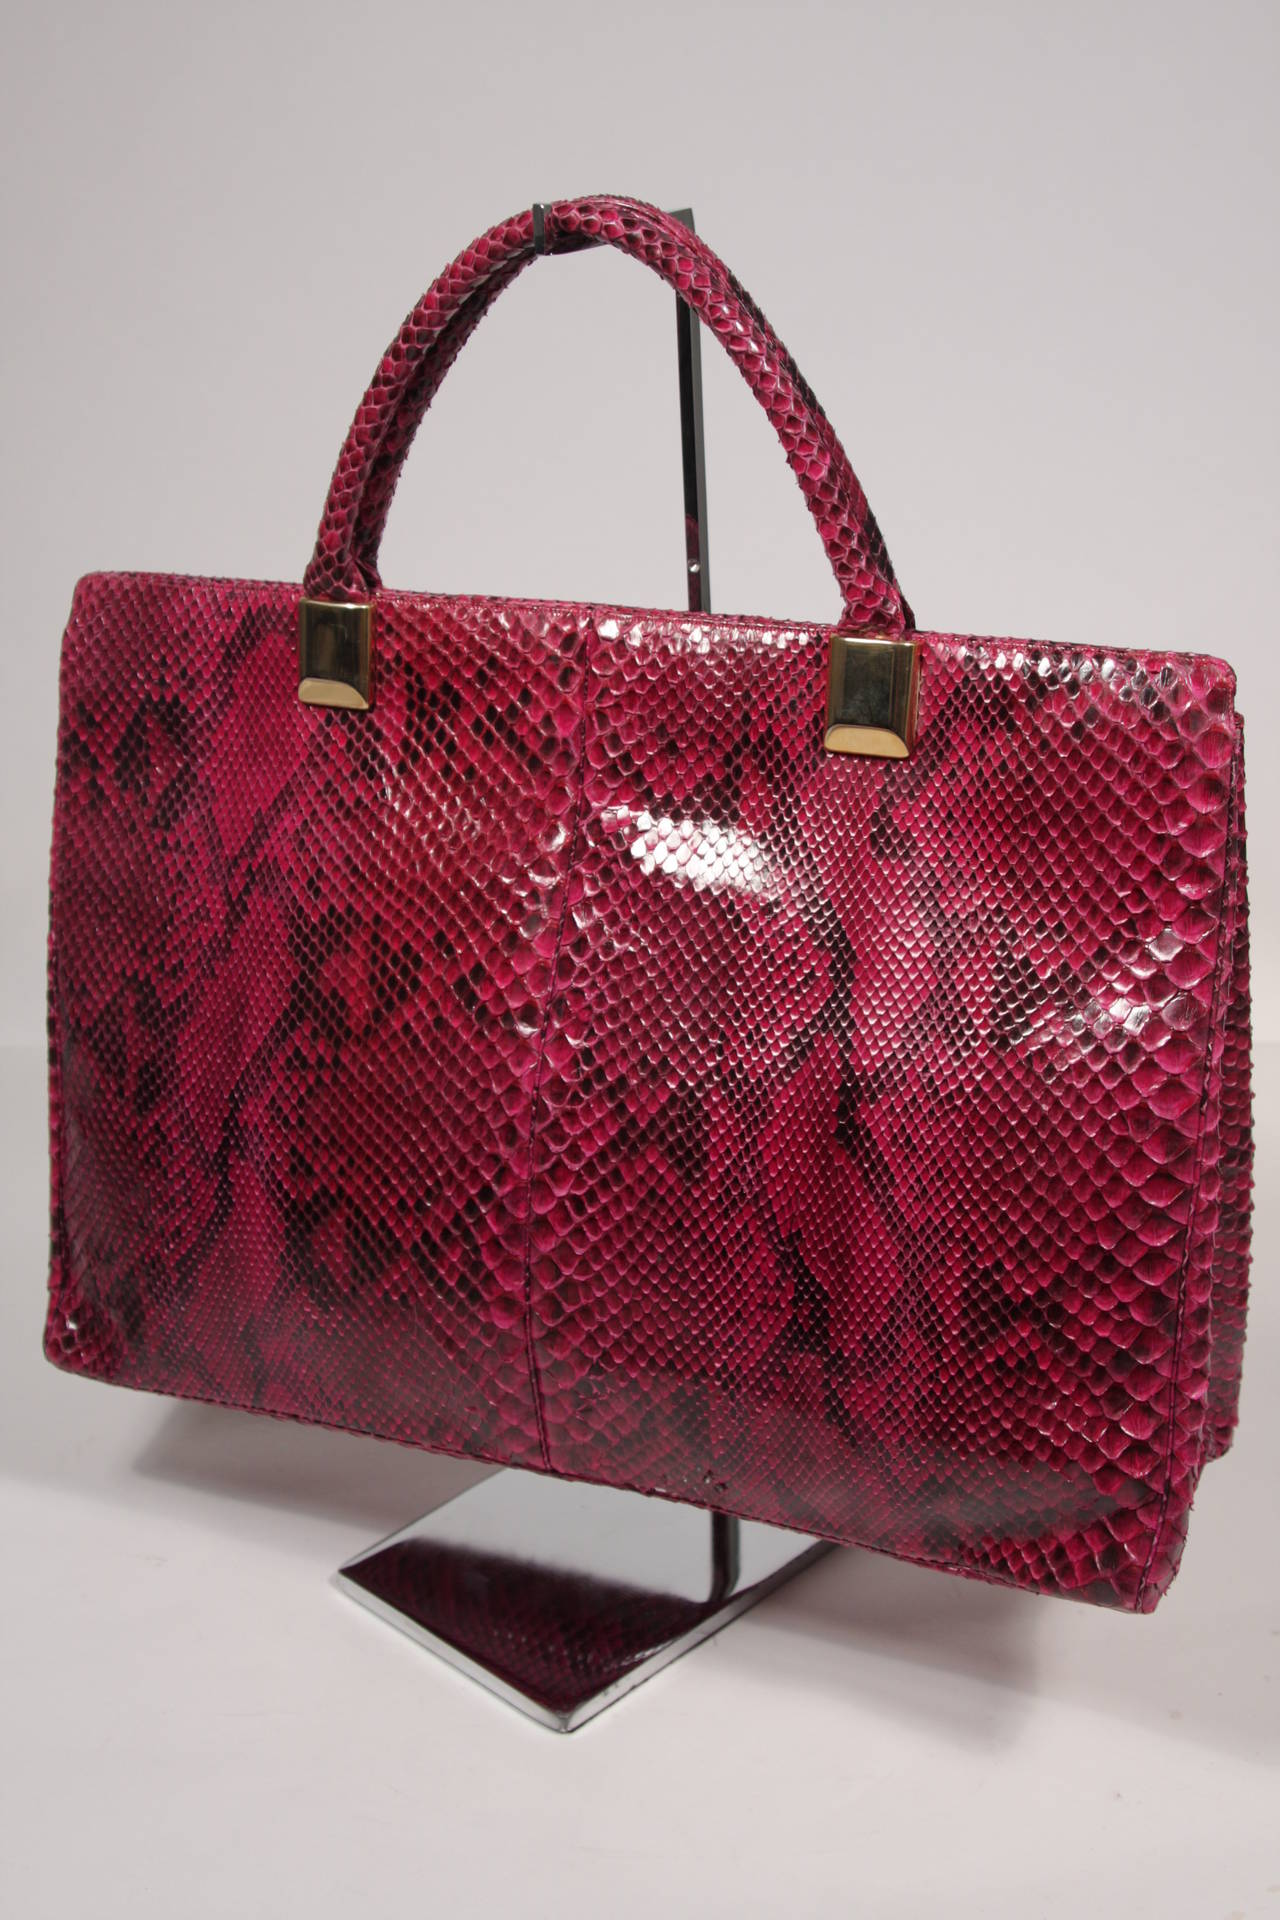 1980's Judith Leiber Extra Large Magenta Snakeskin Tote with Gold Hardware 7